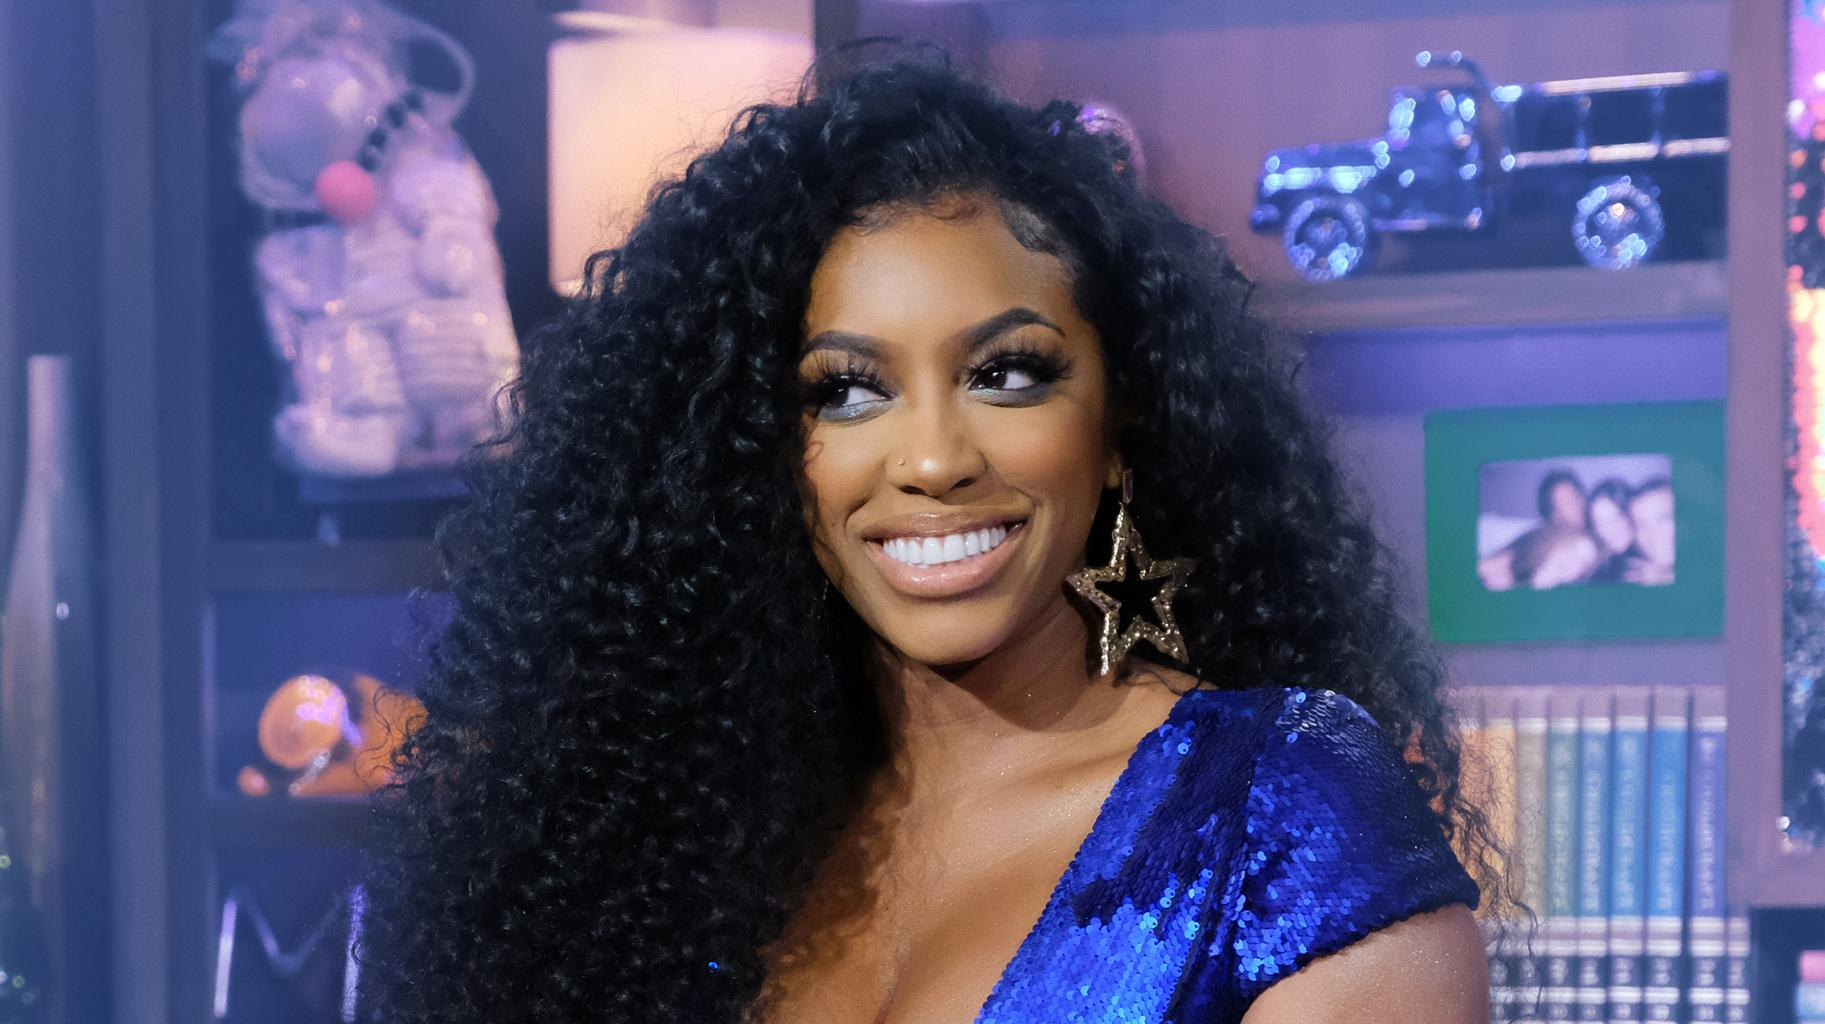 Porsha Williams Wants To Redeem The Soul Of America